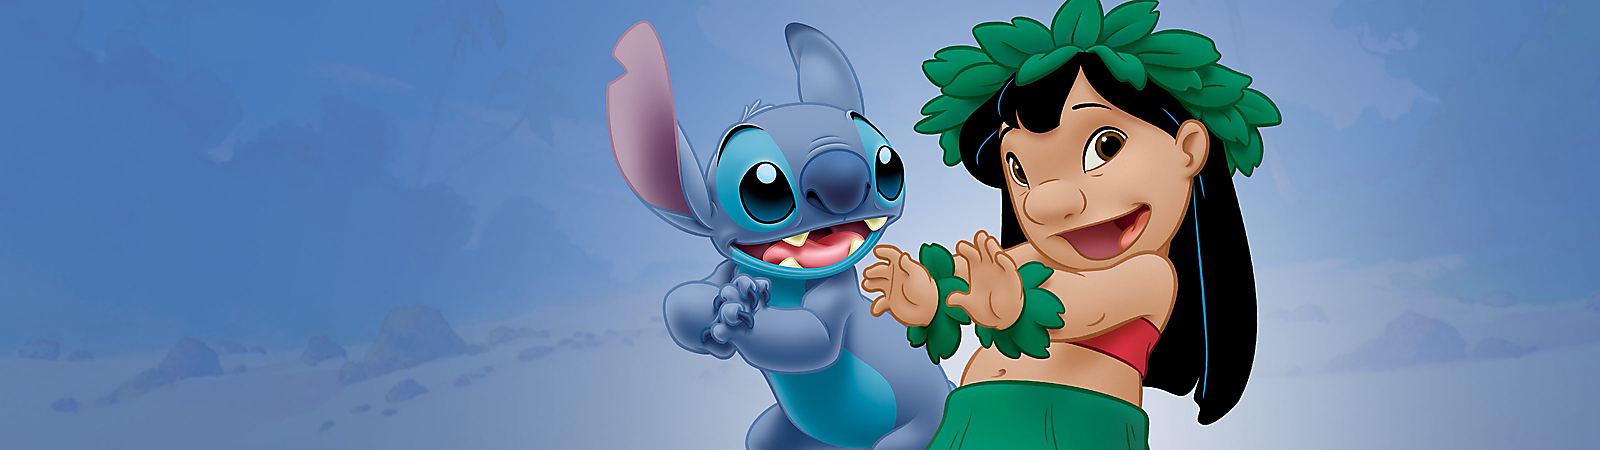 Background image of Lilo & Stitch